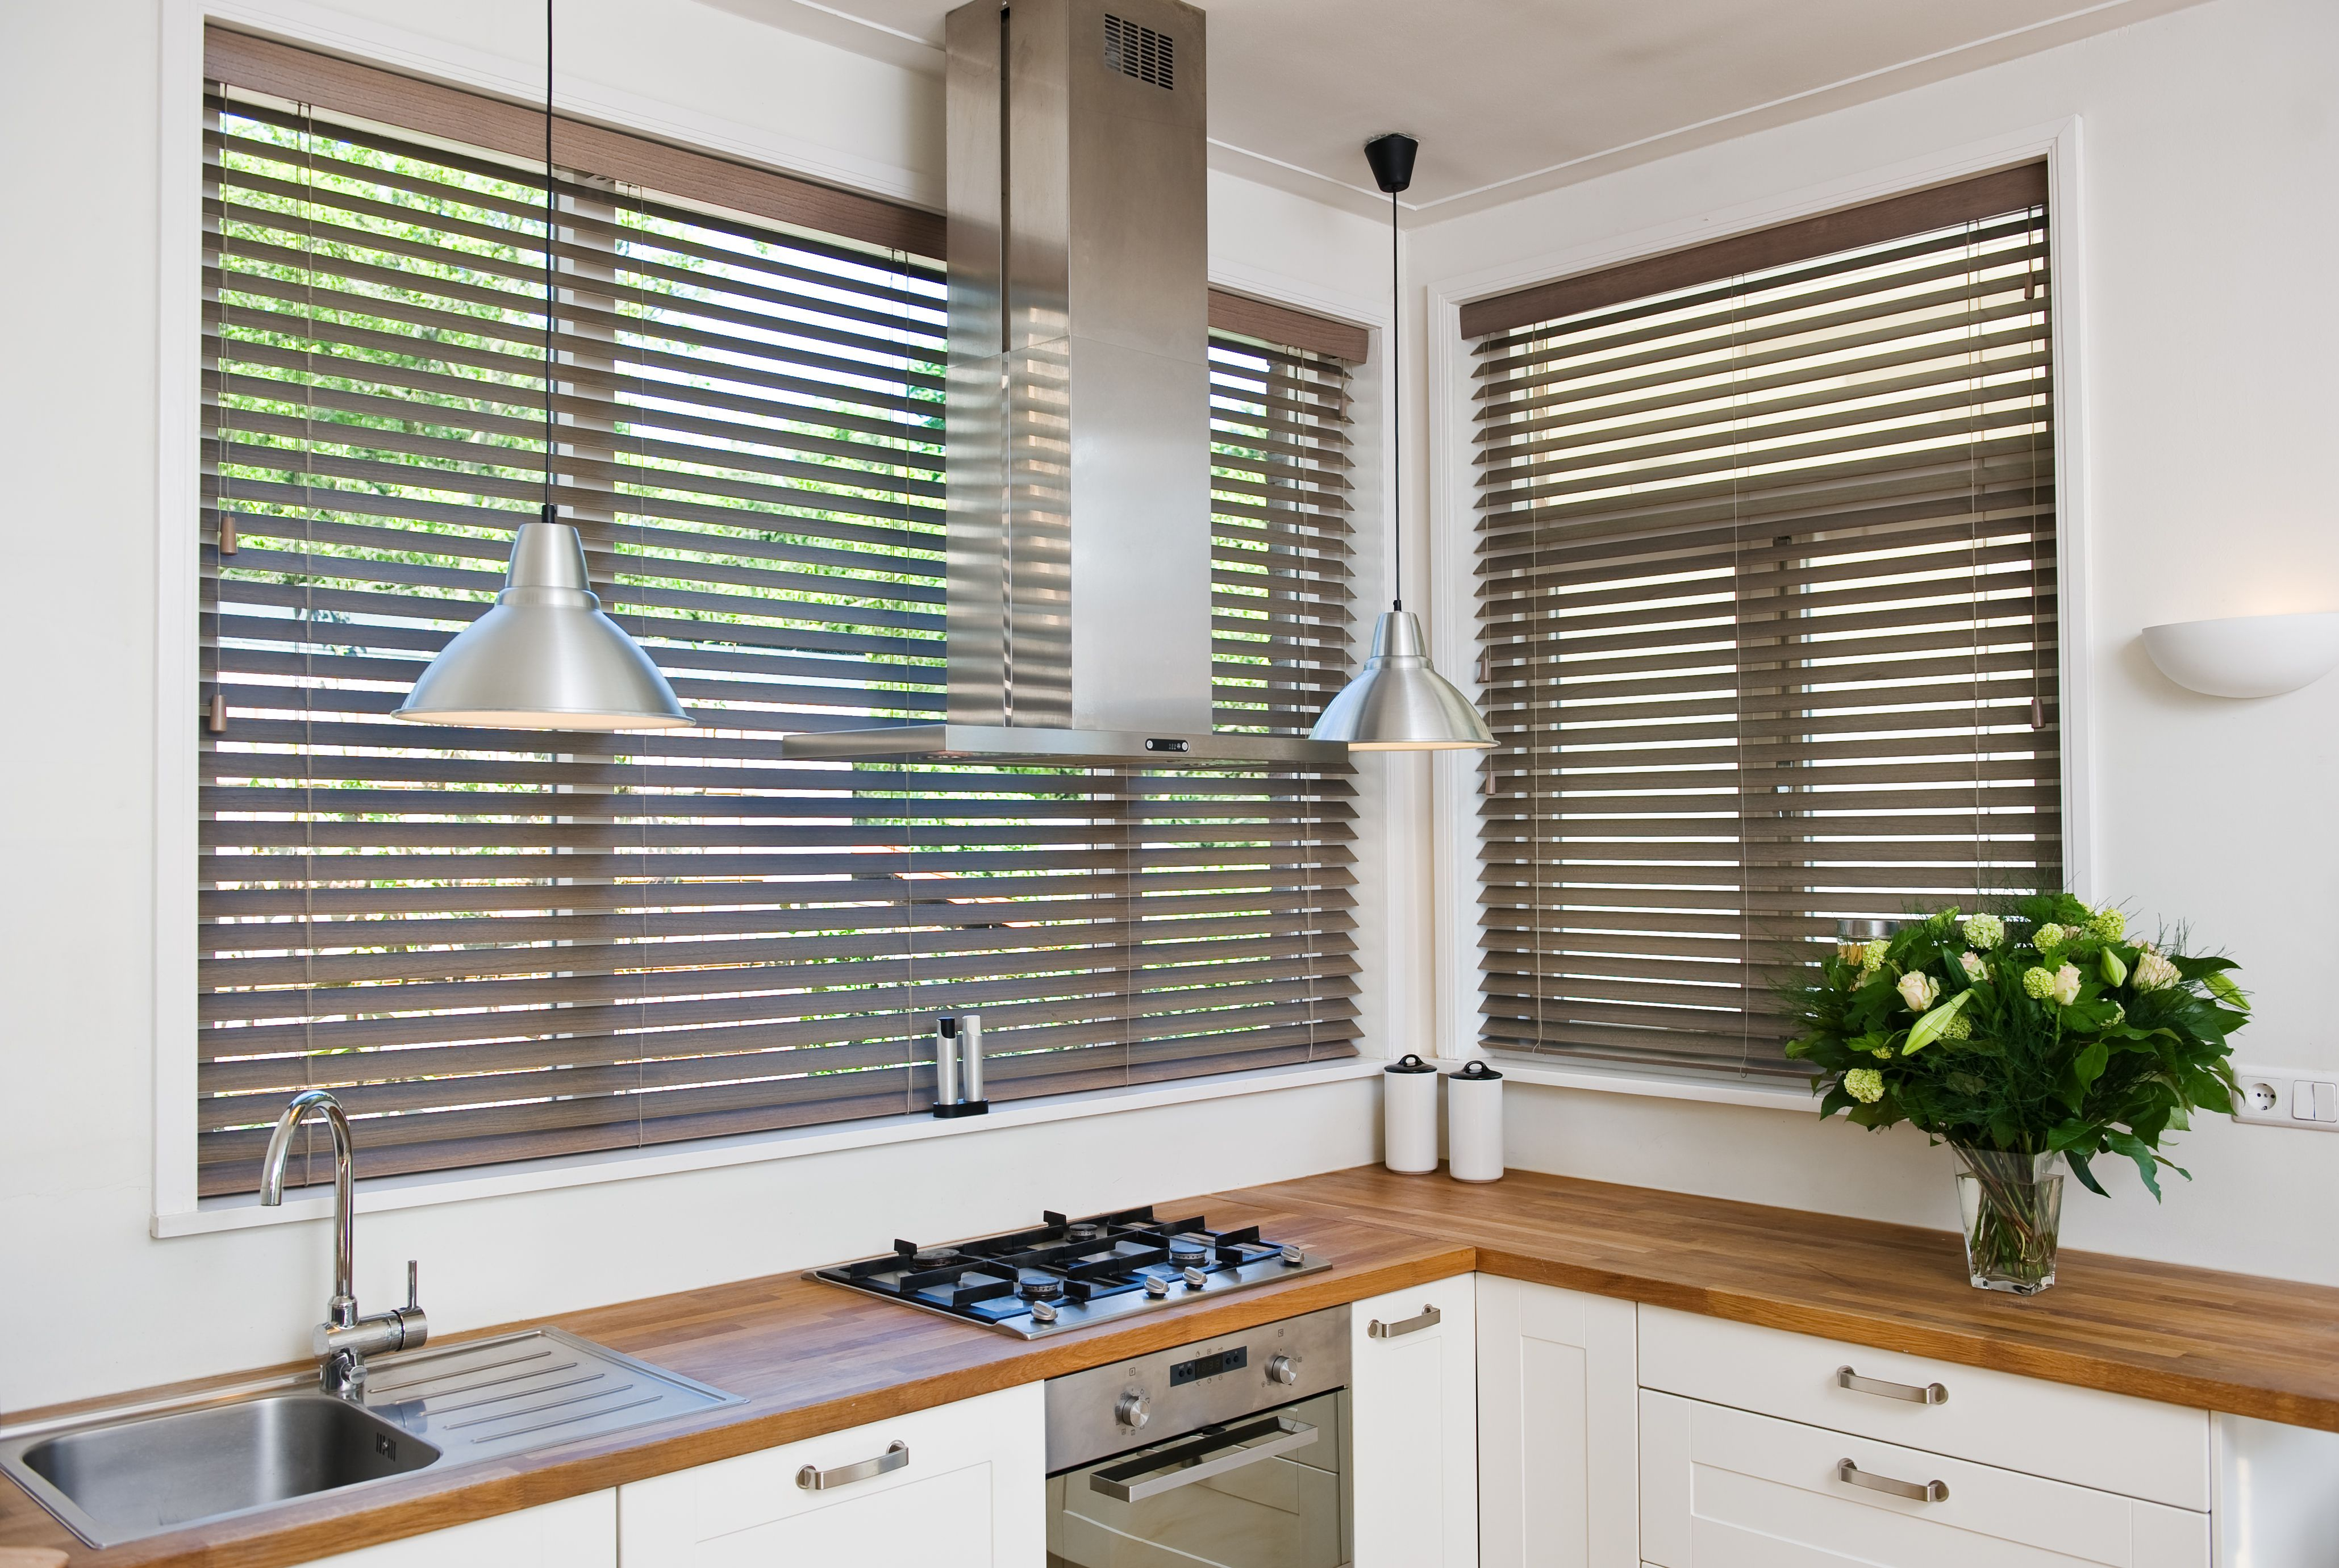 Beautiful Timber Venetian Blinds In A Kitchen Setting